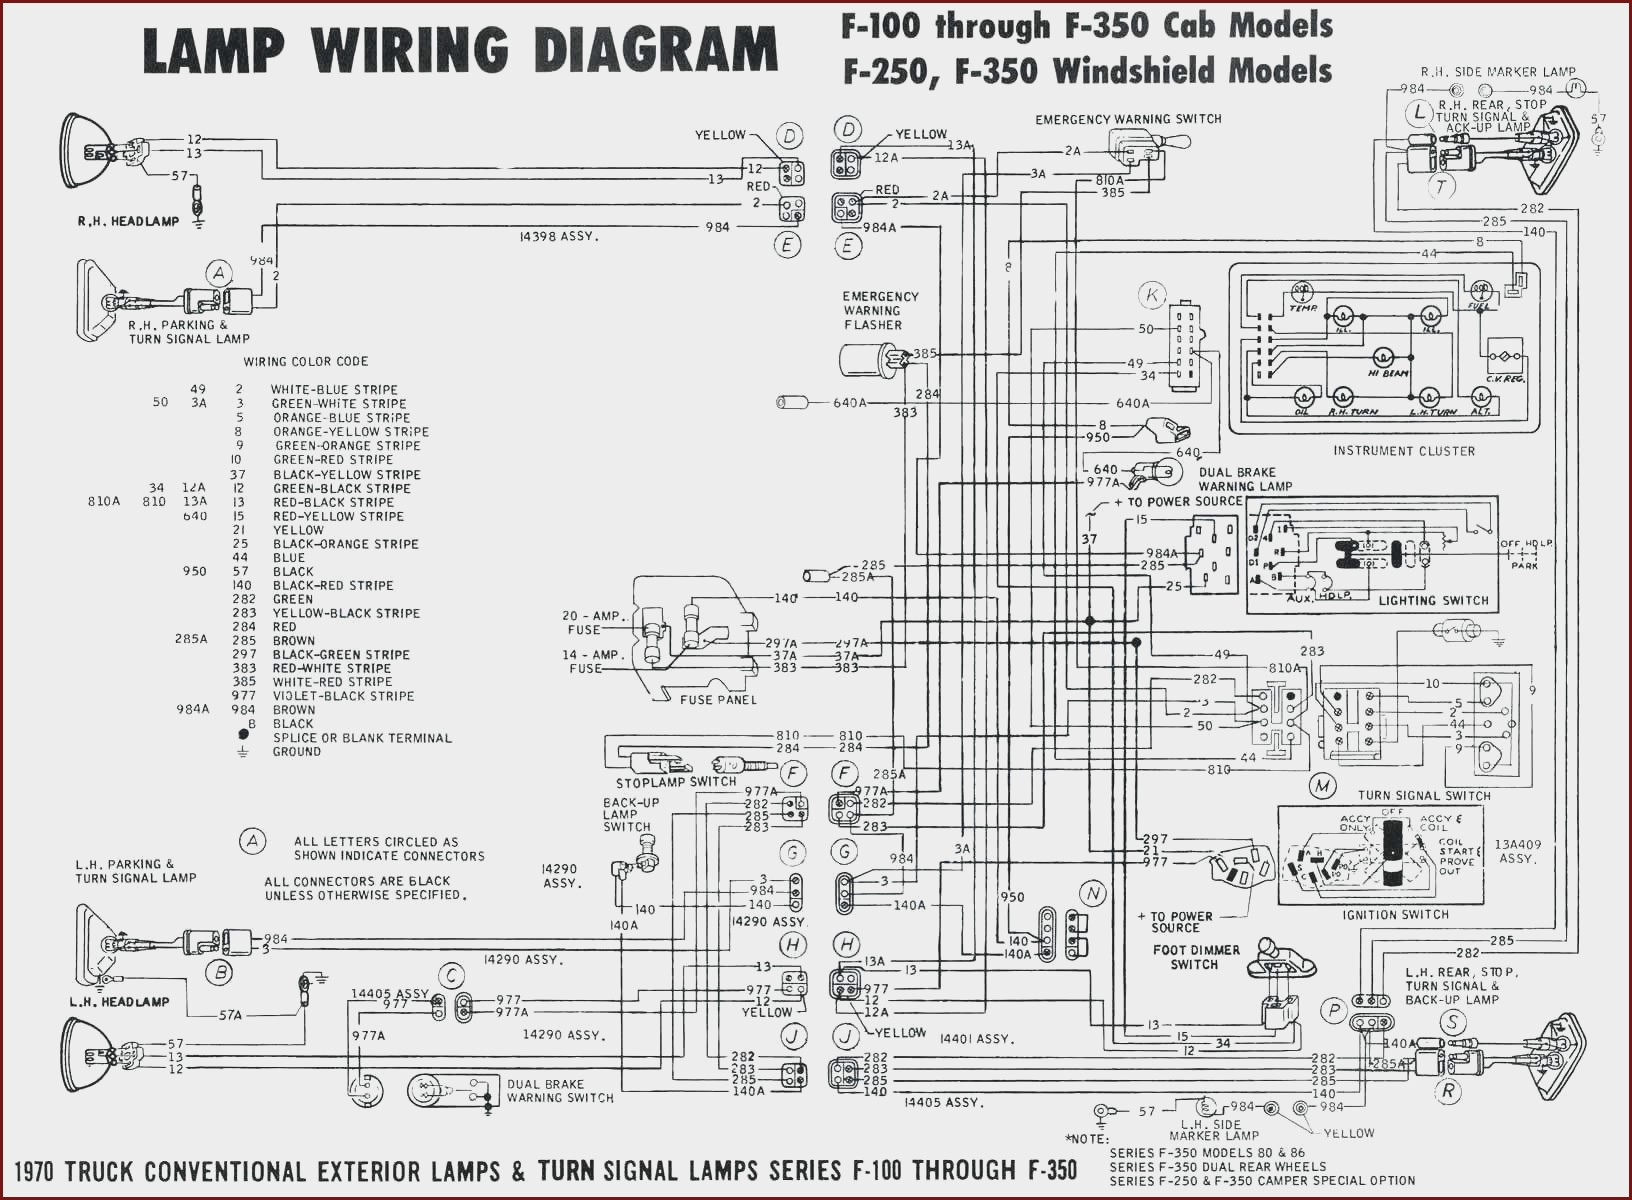 1997 Nissan Altima Engine Diagram 2012 Nissan Sentra Stereo Wiring Diagram at Manuals Library Of 1997 Nissan Altima Engine Diagram 1995 Nissan Pathfinder Starter Wiring Diagram at Manuals Library